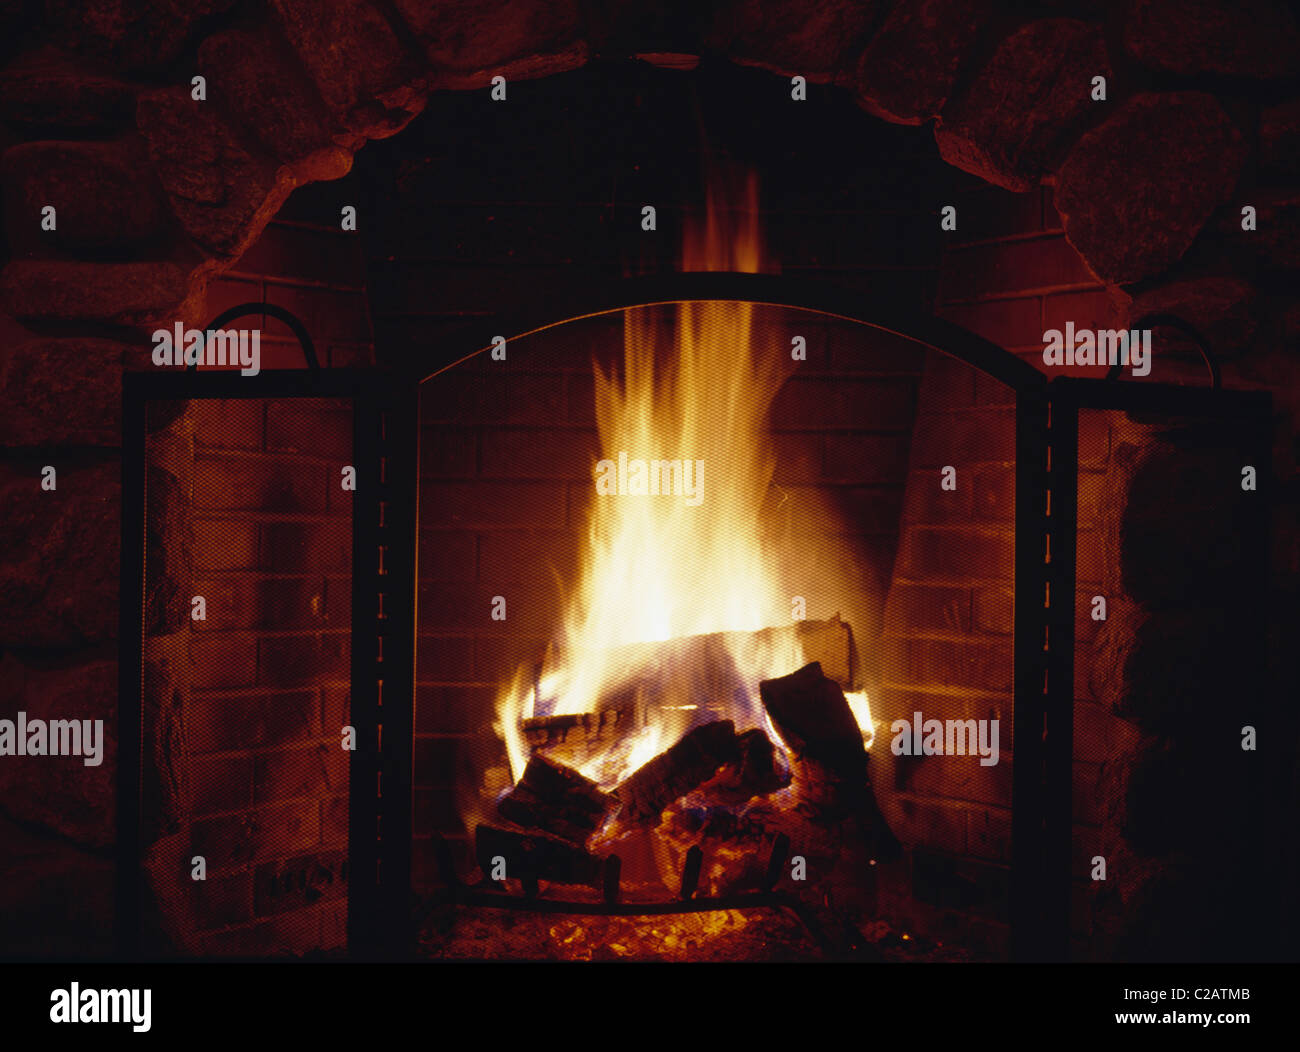 Fire burning in fireplace - Stock Image